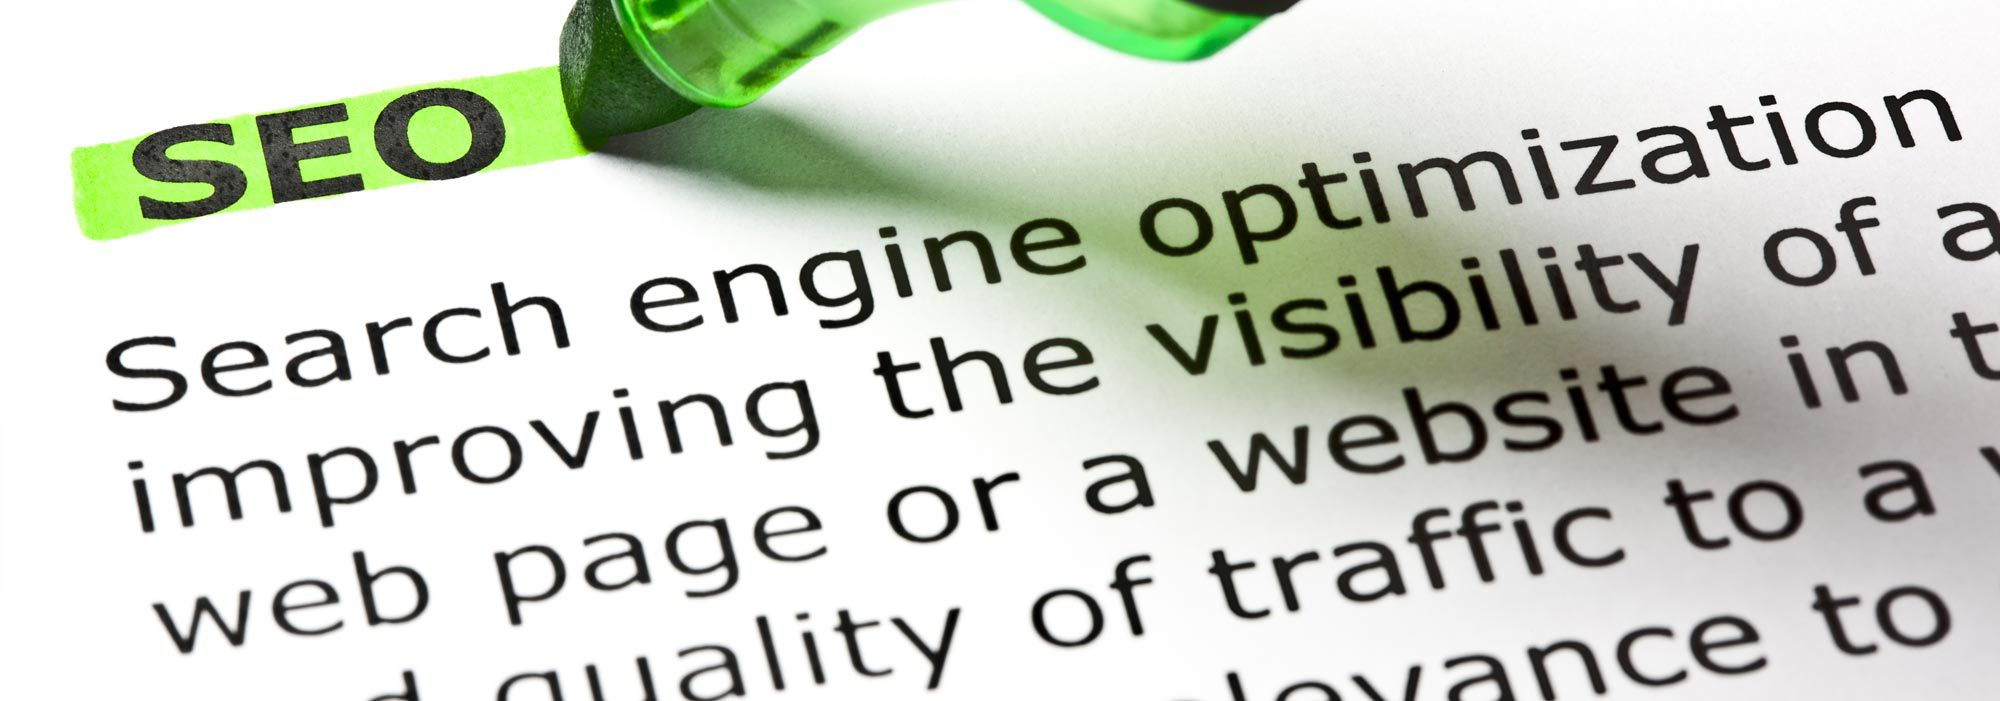 SEO Agency Solution Web Designs for Search Engine Optimization